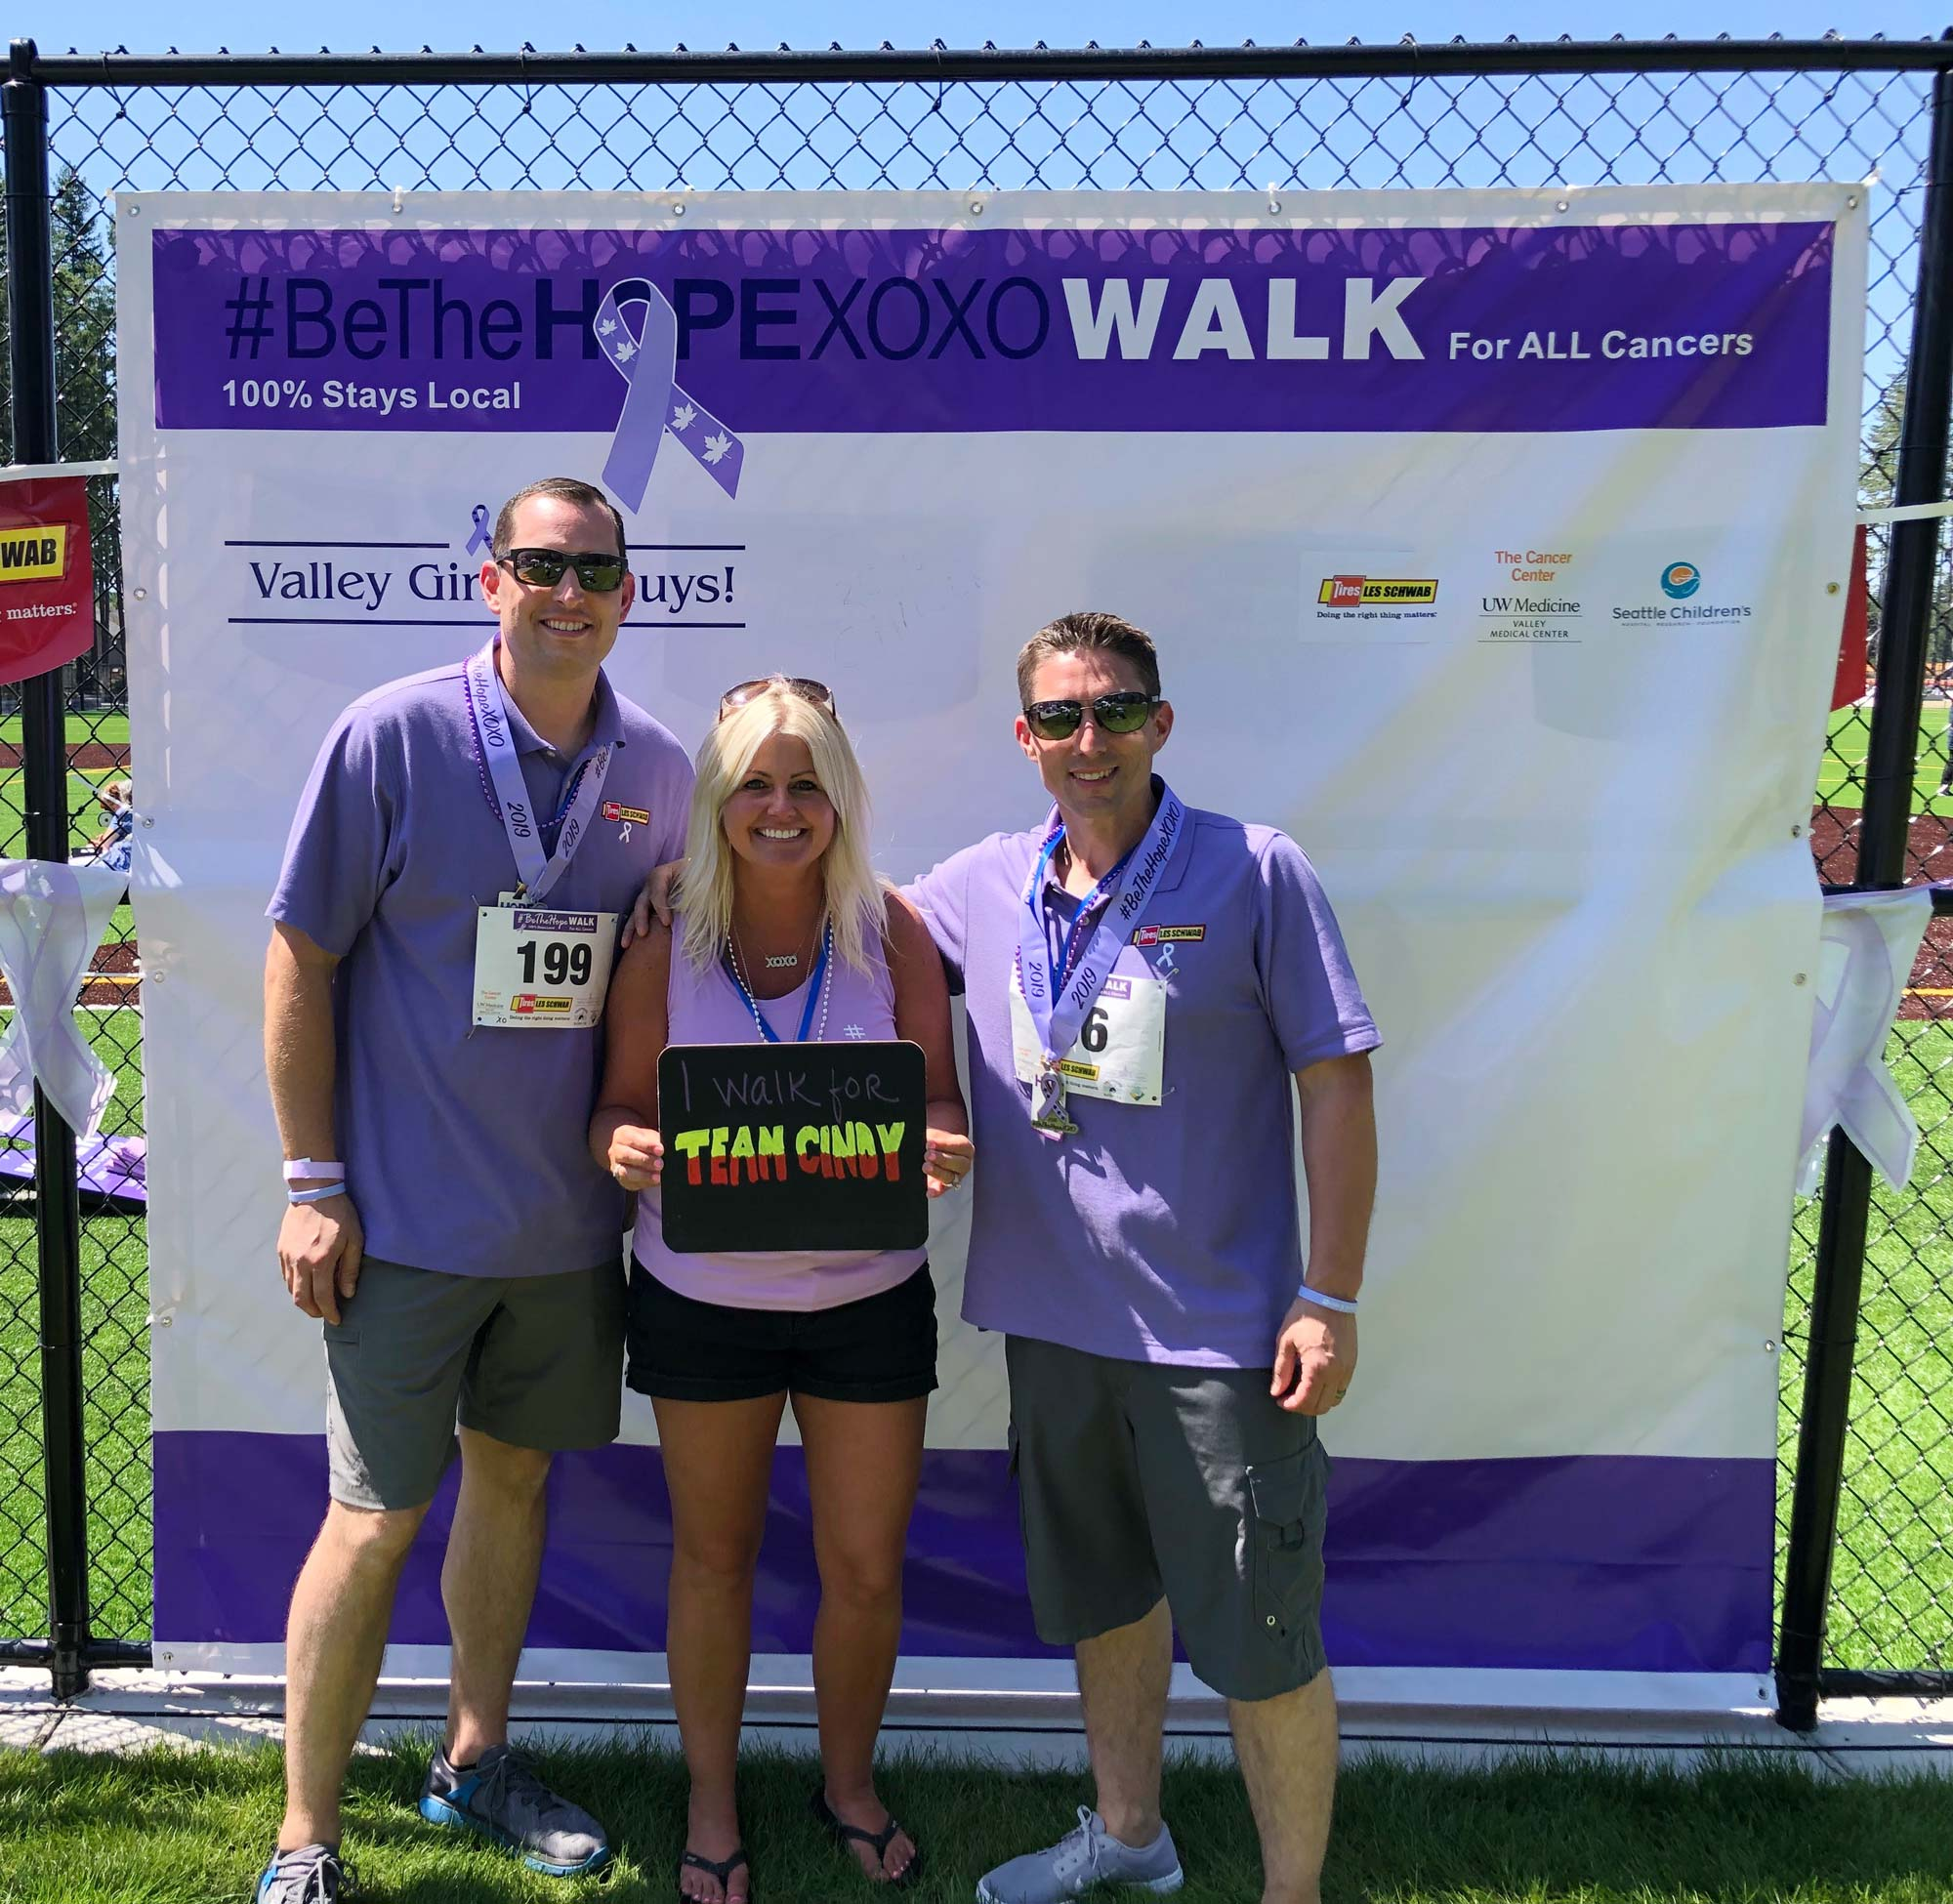 Les Schwab employees supporting the Be The HOPE Walk